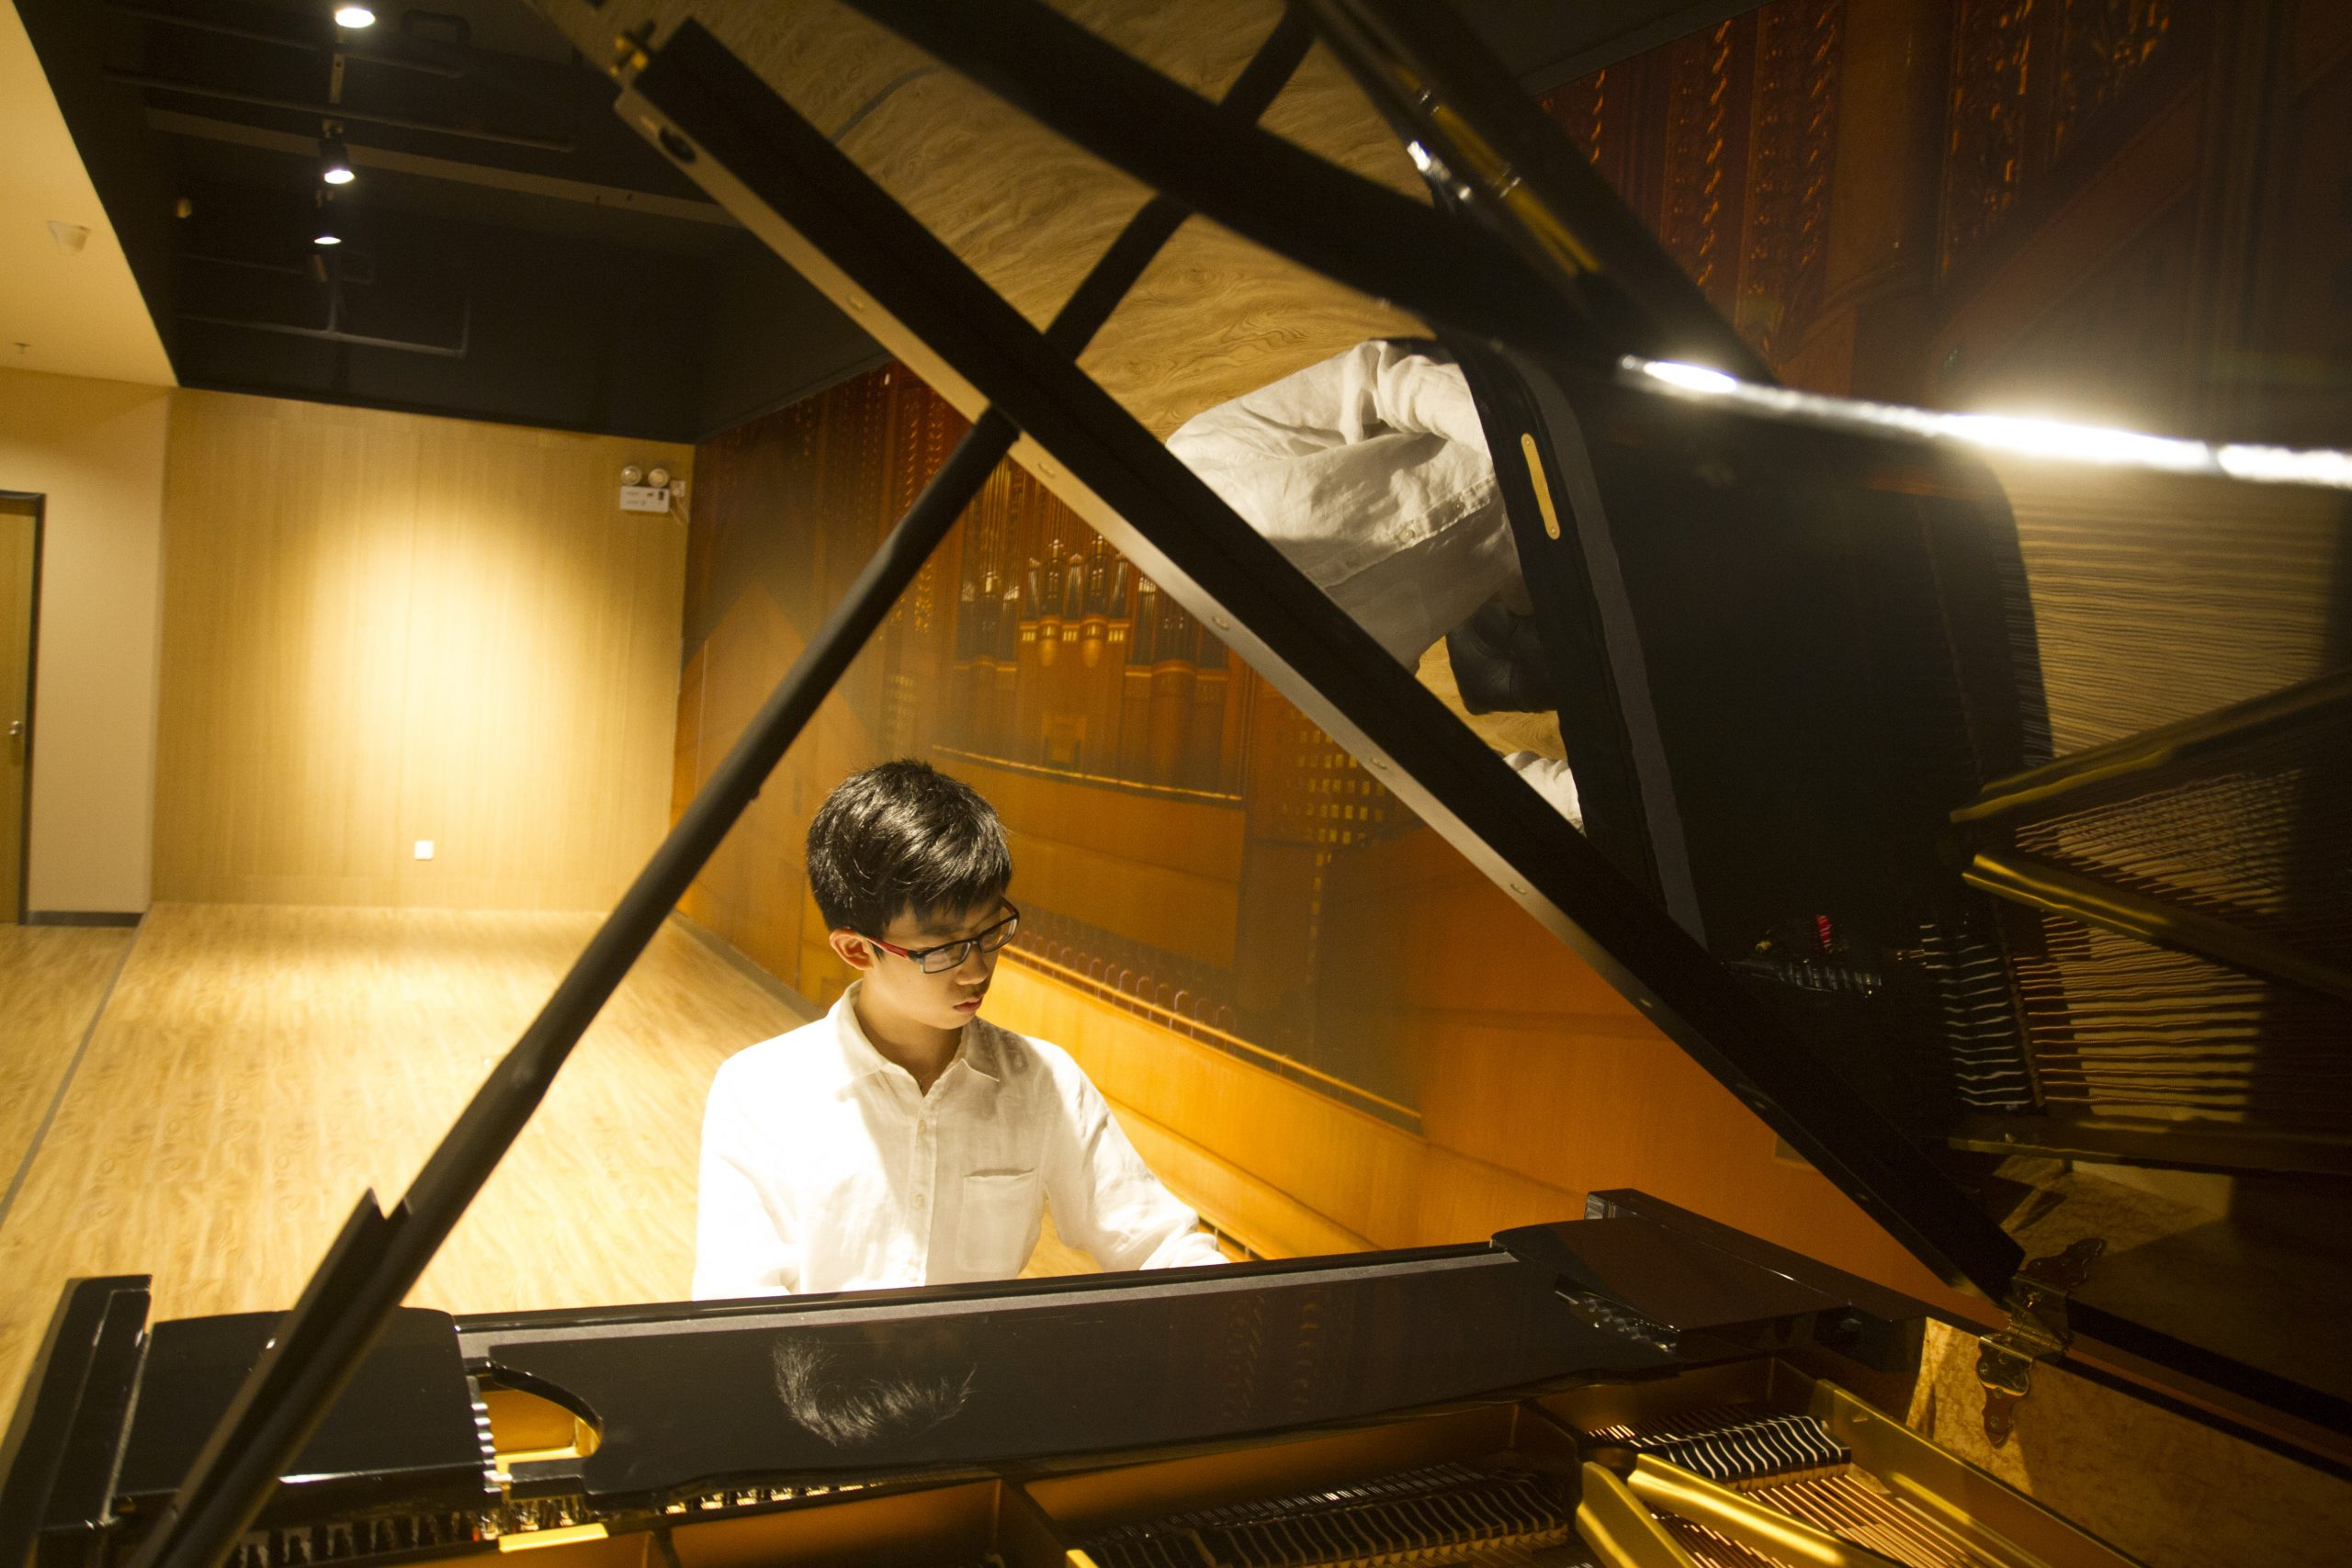 Kingsley playing the piano in China